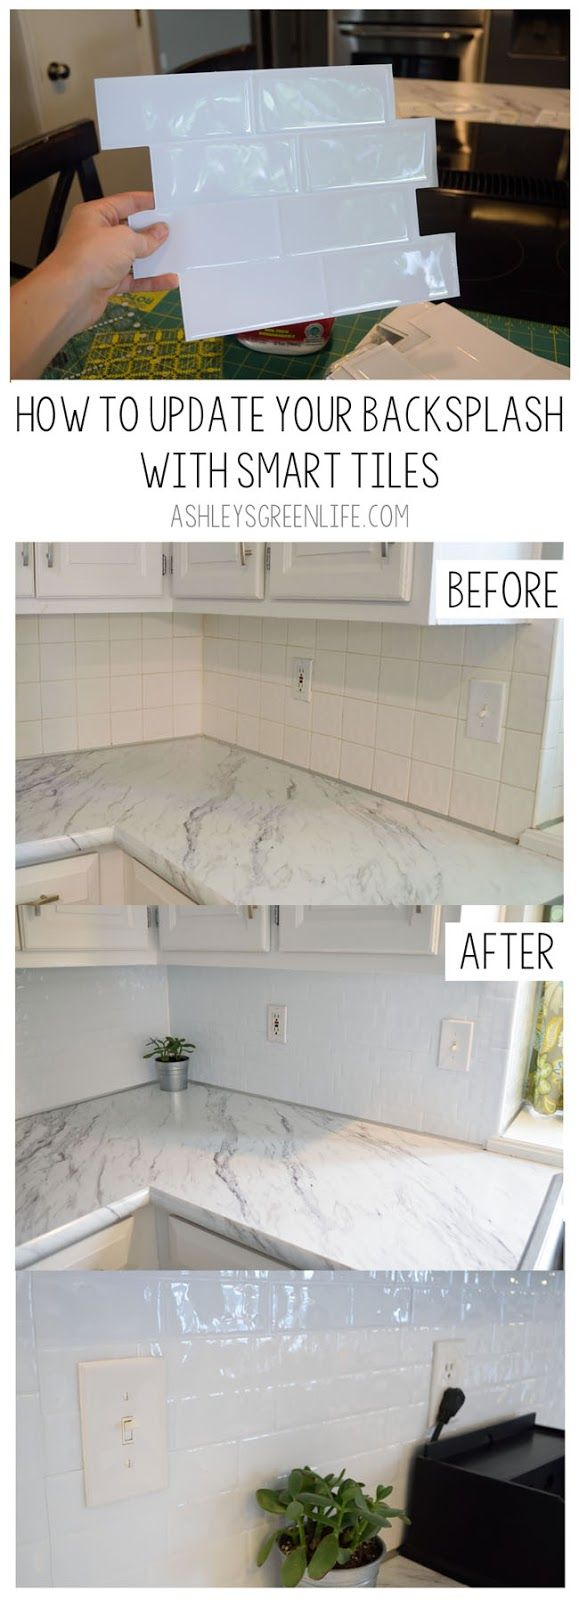 In this project I transformed the dated, off-white tiles in my backsplash to more modern, bright-white, subway-style tiles all without removing my existing tile and in just a few hours by using a product called Smart Tiles. I used the style Metro Blanco to create the modern subway tile style.